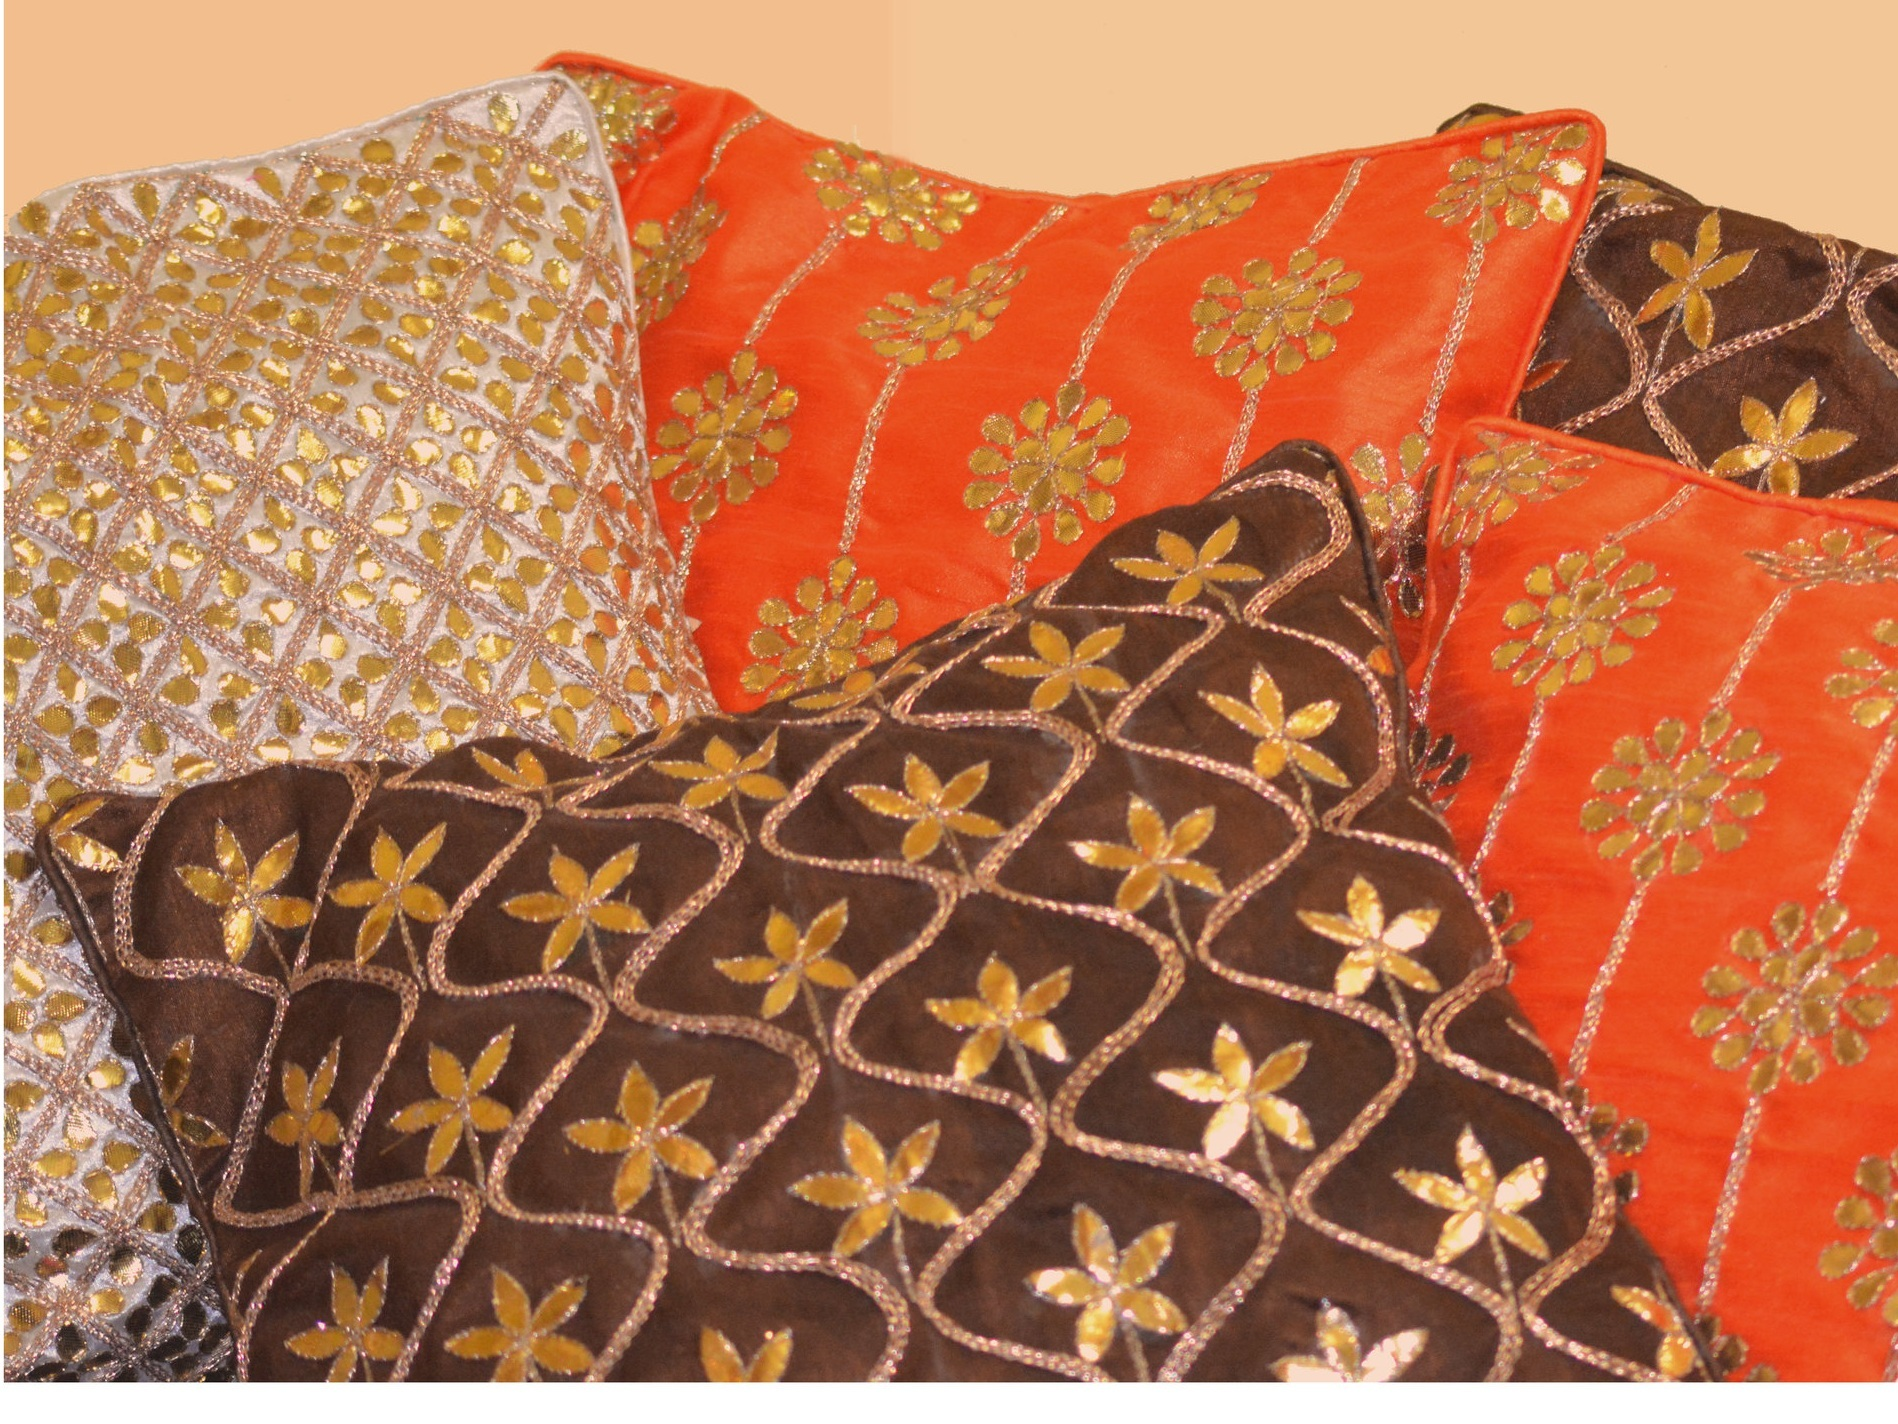 Zohra - Zohra cushions strike beautiful balance between floral motifs and geometric patterns inspired from Mughal sensibility